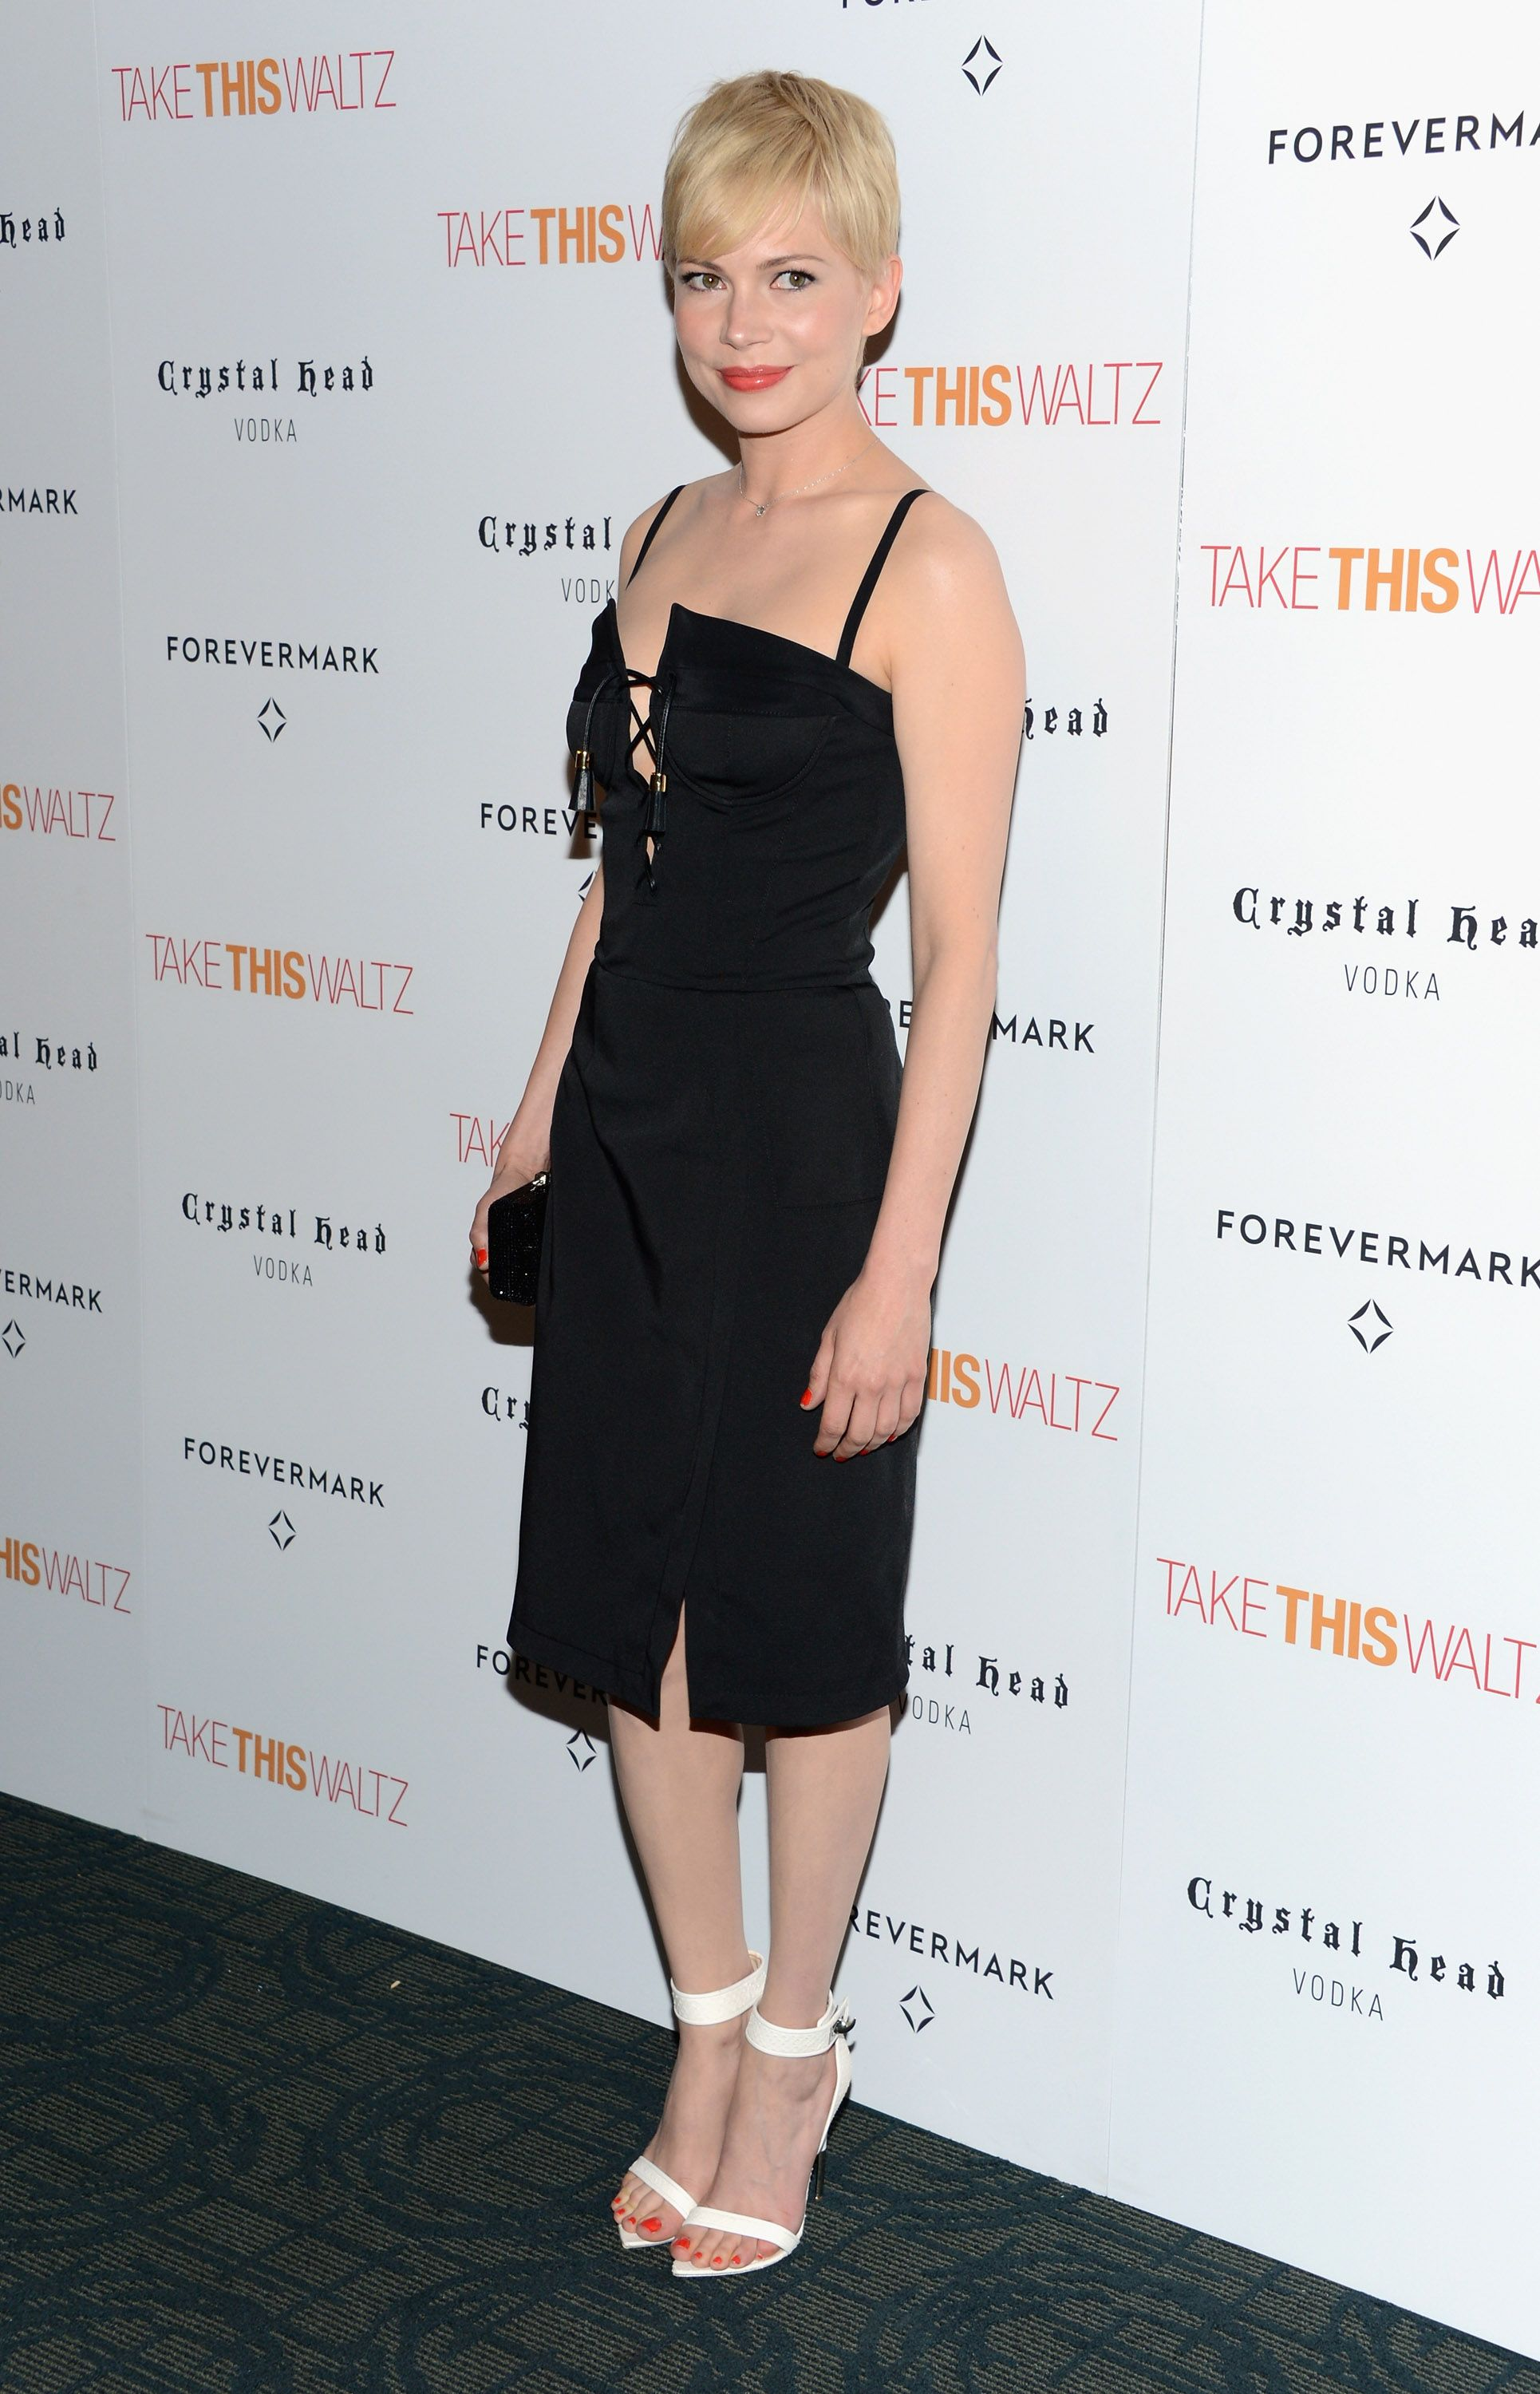 Michelle Williams Wears an Edgy LBD For a Special Premiere - www.popsugar.com